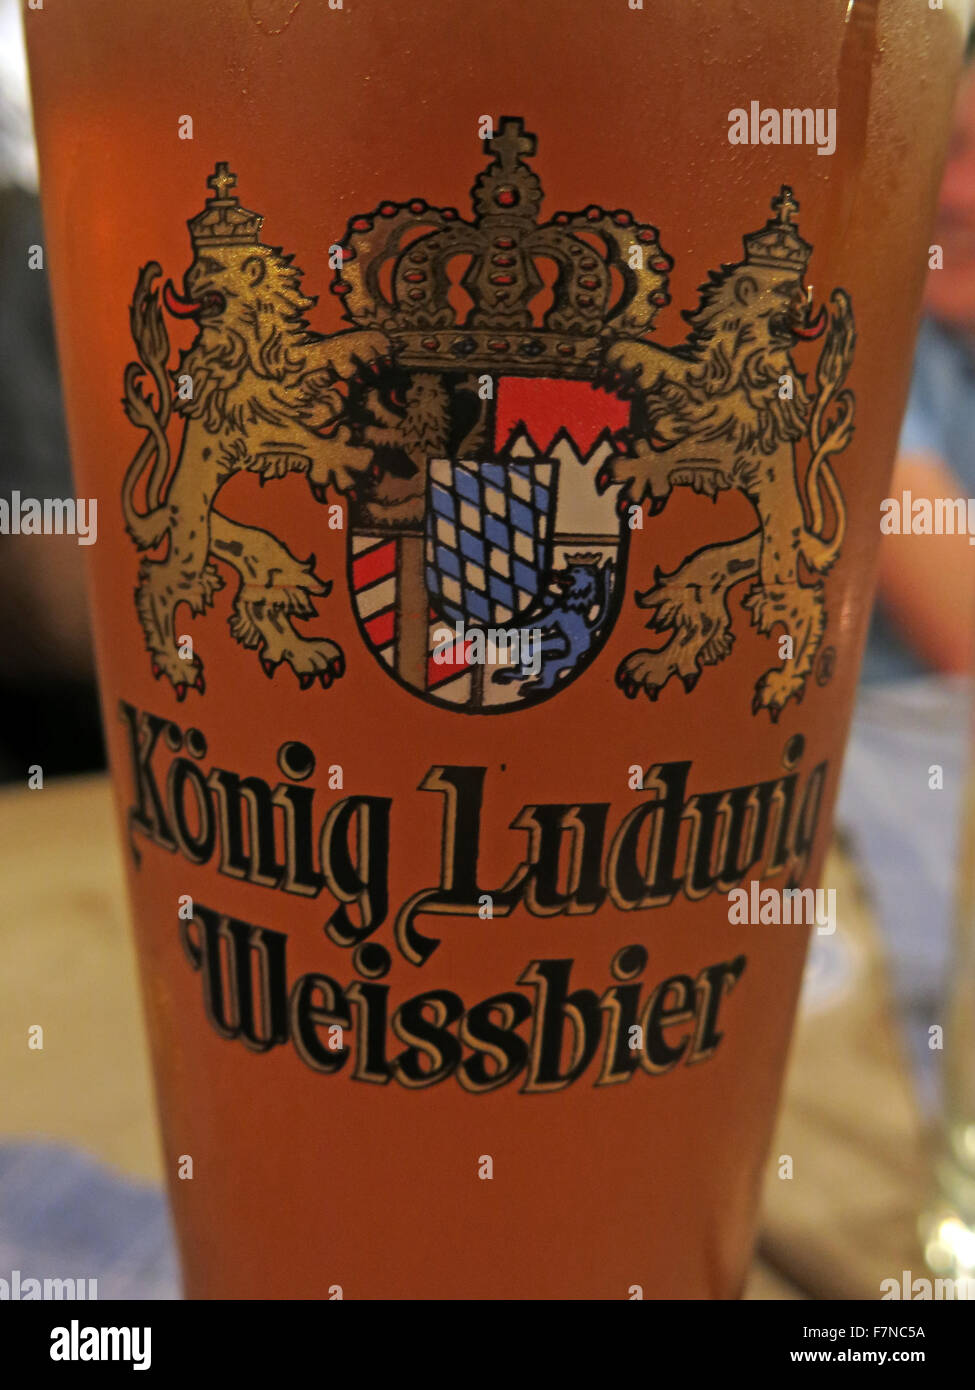 A glass of konig Ludwig Weissbier, Munich,Germany - Stock Image